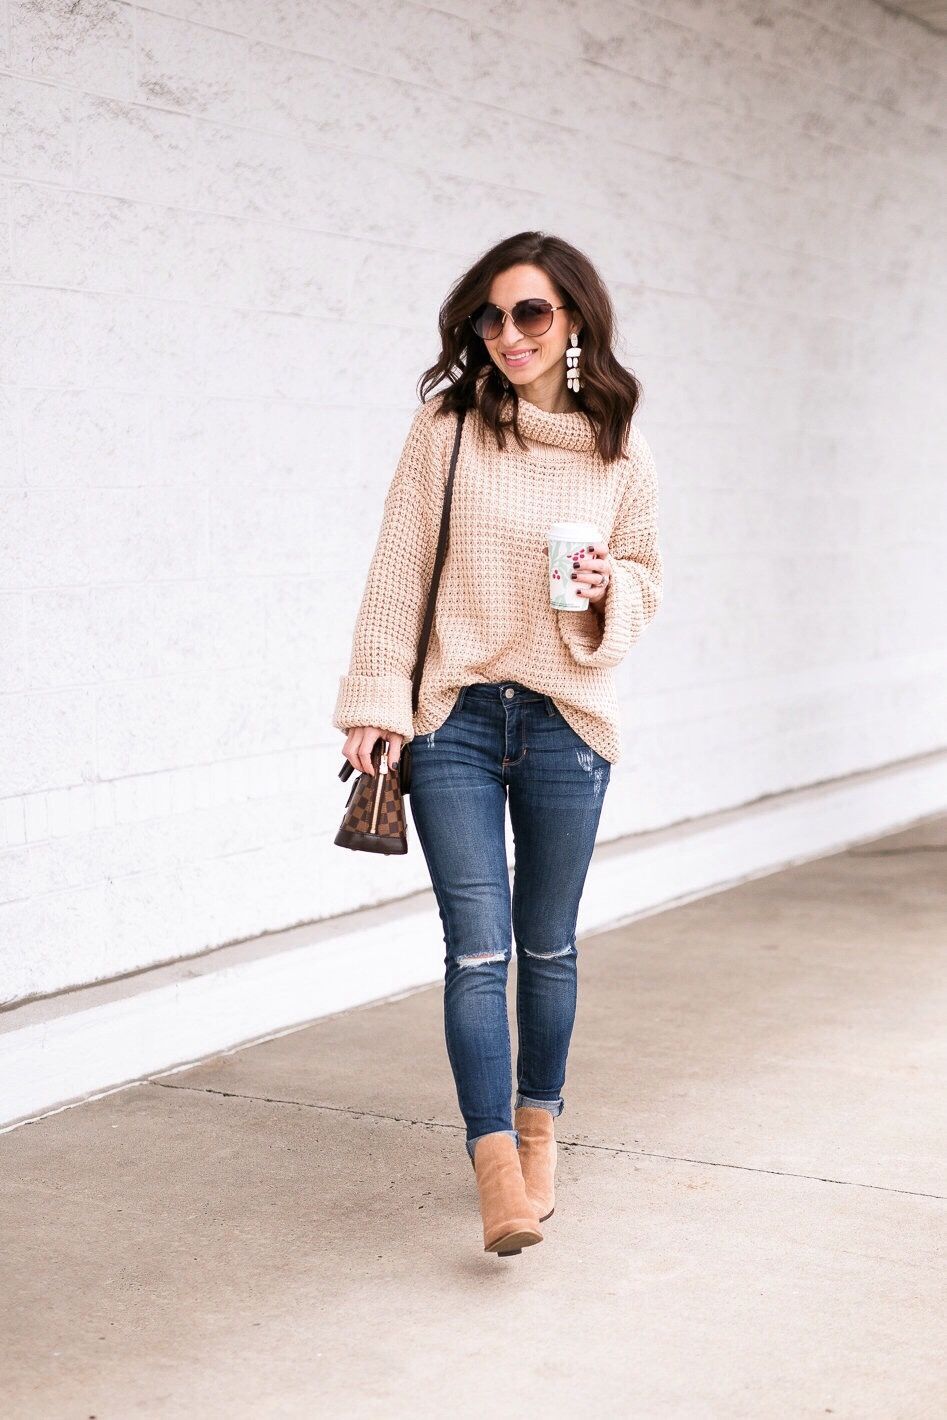 219e84a3993 Goodnight Macaroon Retta sweater in Cream. Louis Vuitton Alma BB damier  ebene. Suede booties